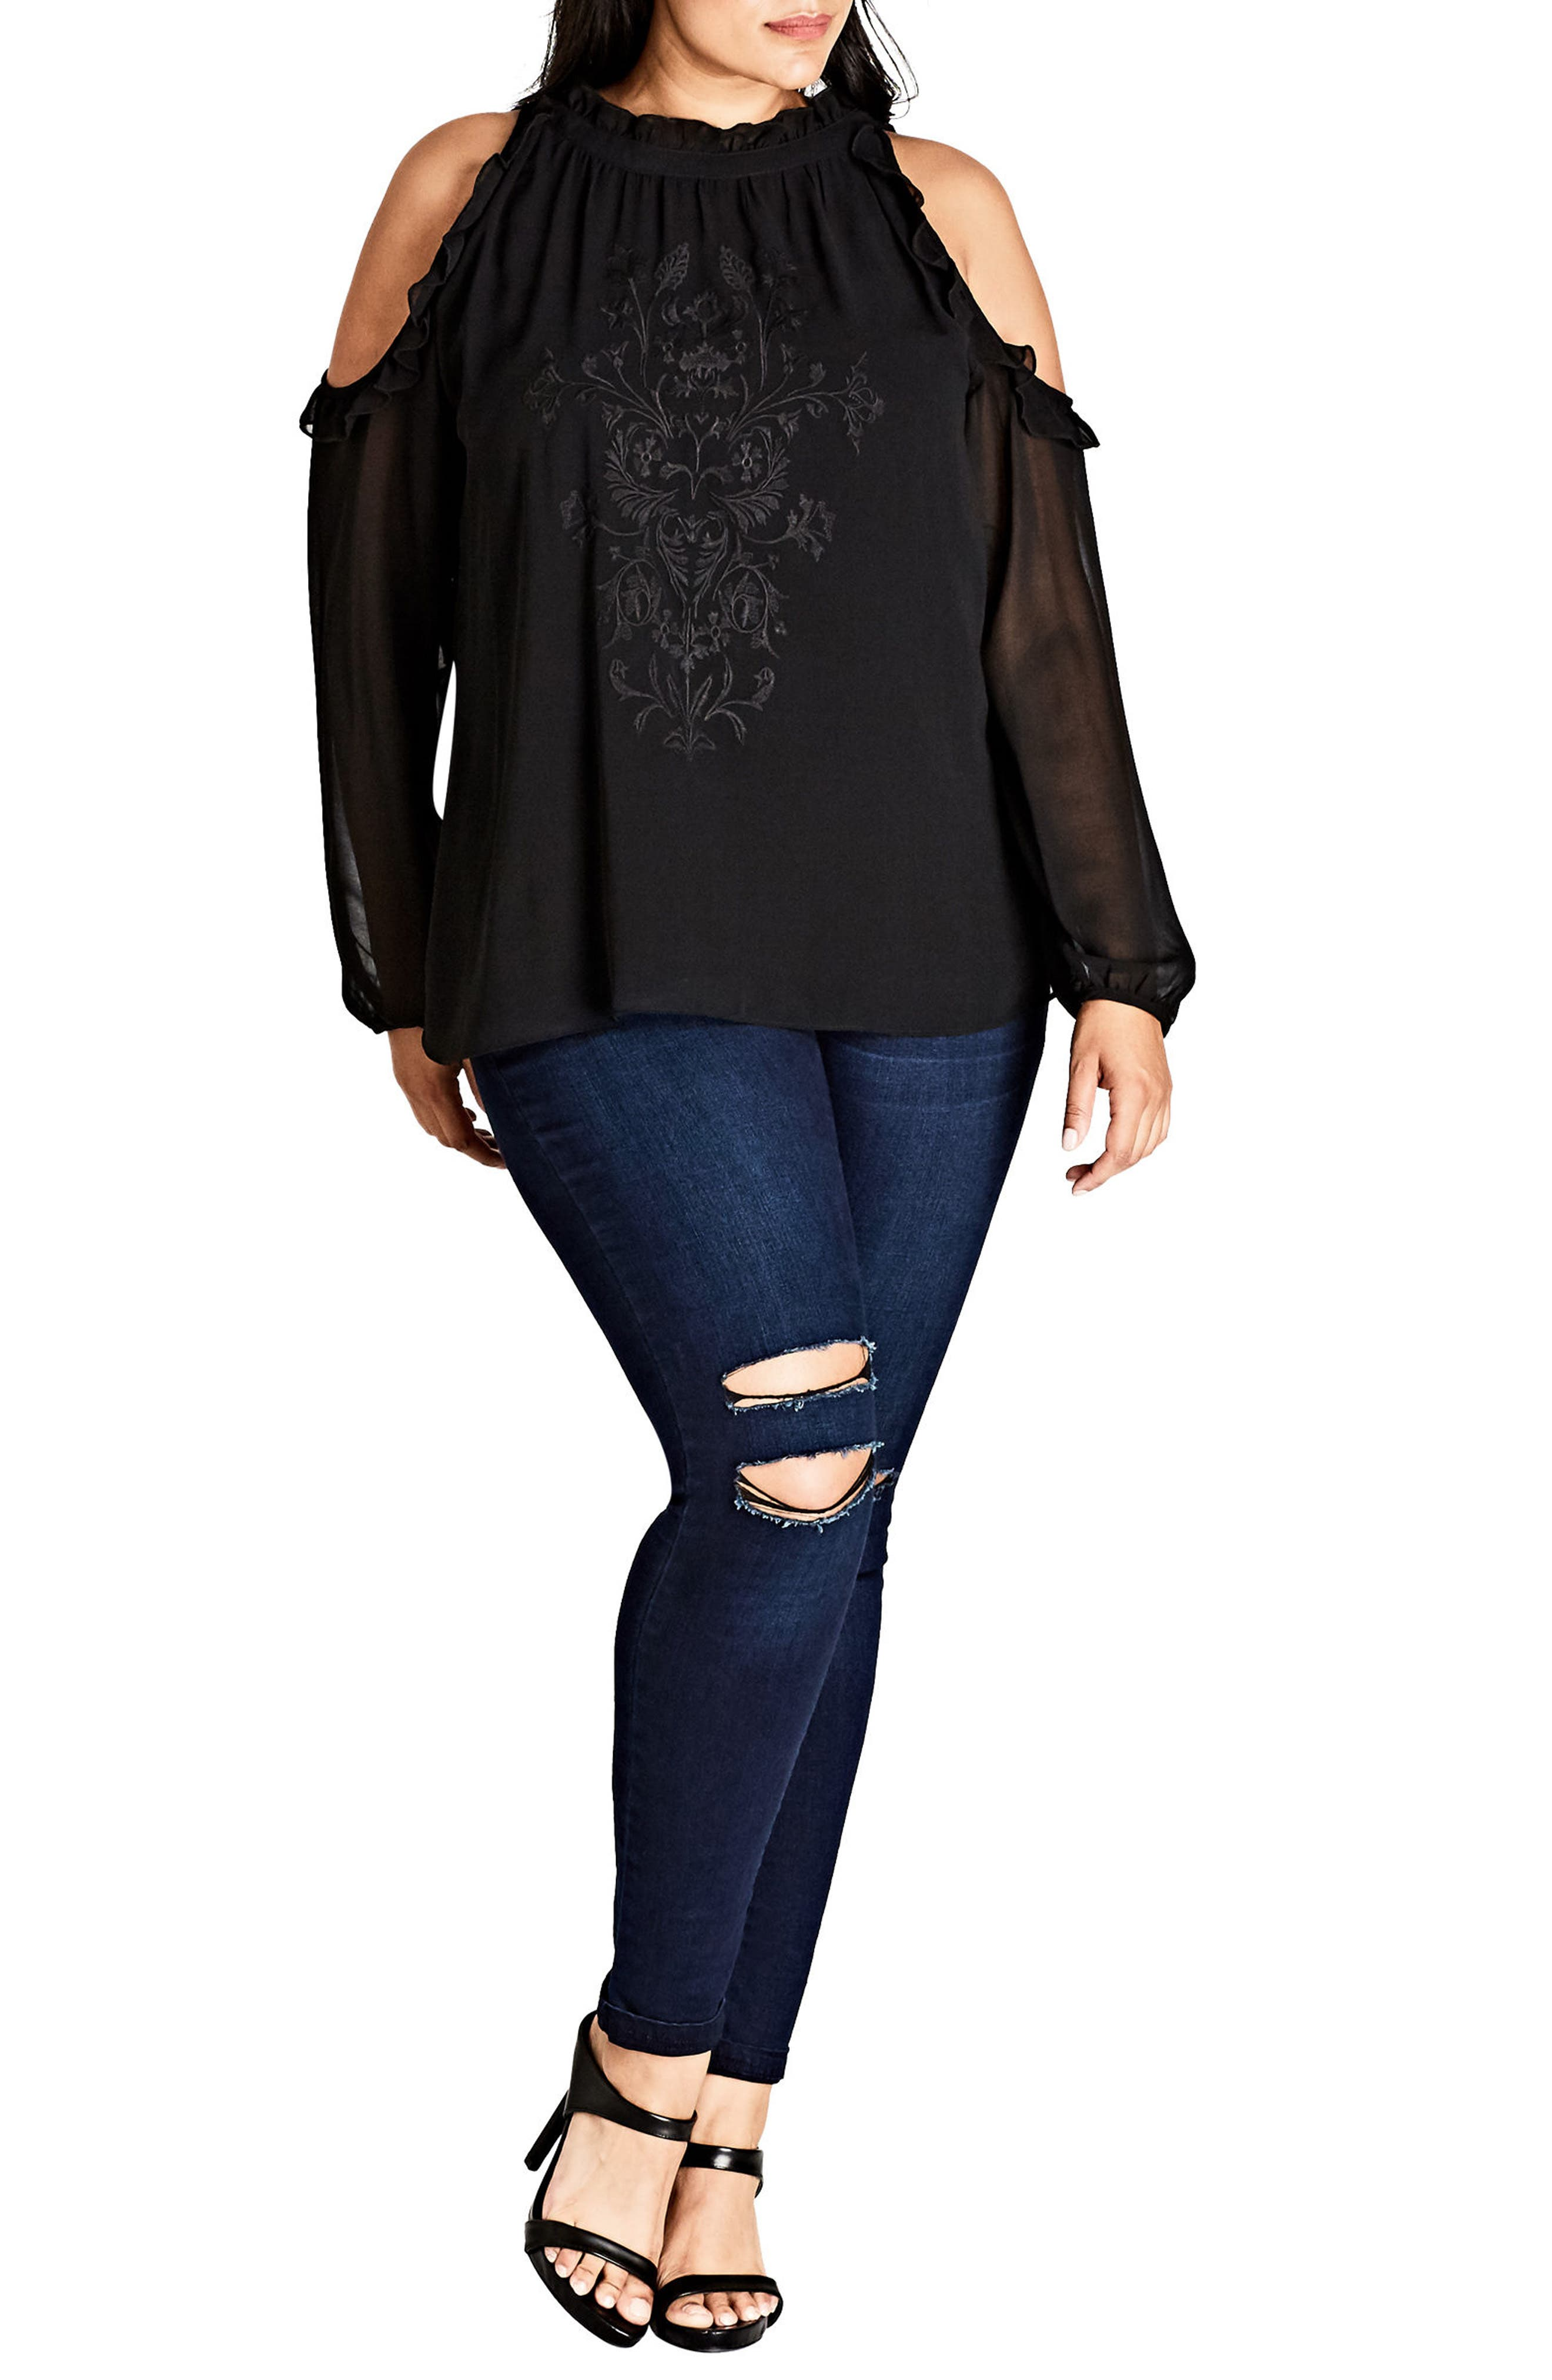 Alternate Image 1 Selected - City Chic Boho Frill Cold Shoulder Top (Plus Size)